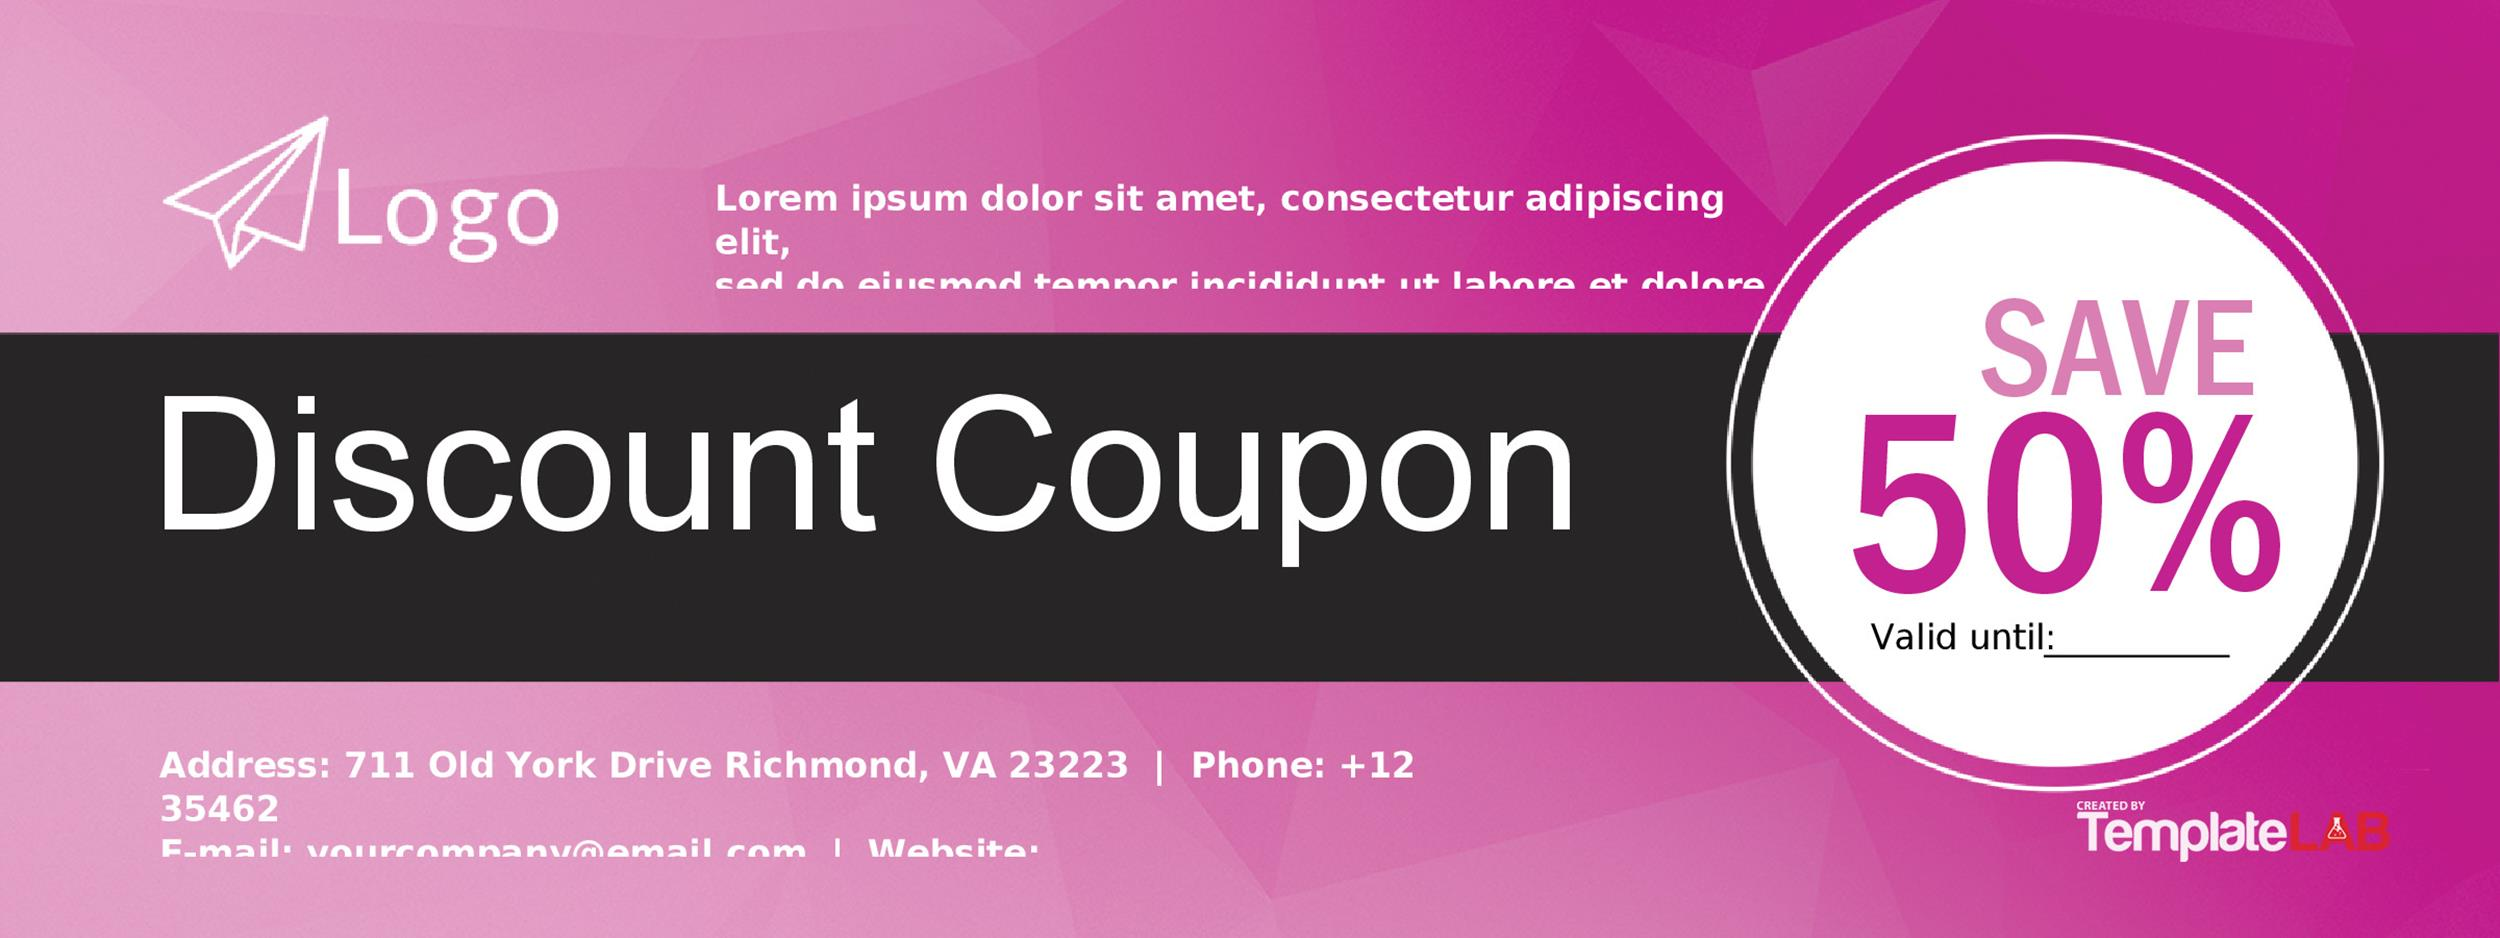 Free Coupon Template 5 – TemplateLab